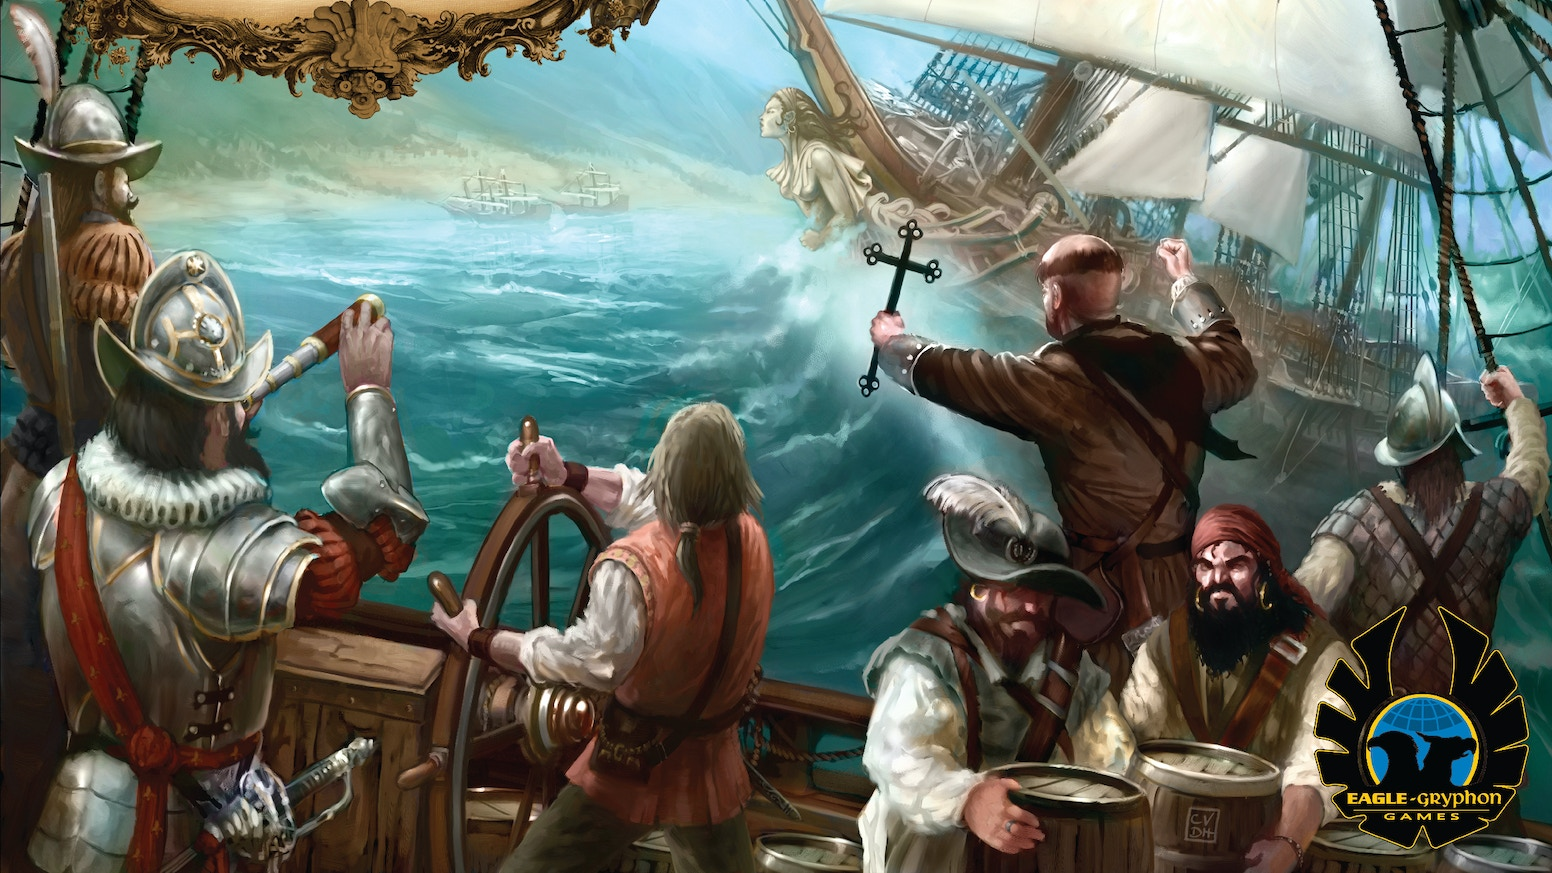 Age of Empires III becomes Empires: Age of Discovery, the Deluxe Edition! 24 Stretch Goals achieved, and $241,958 pledged!